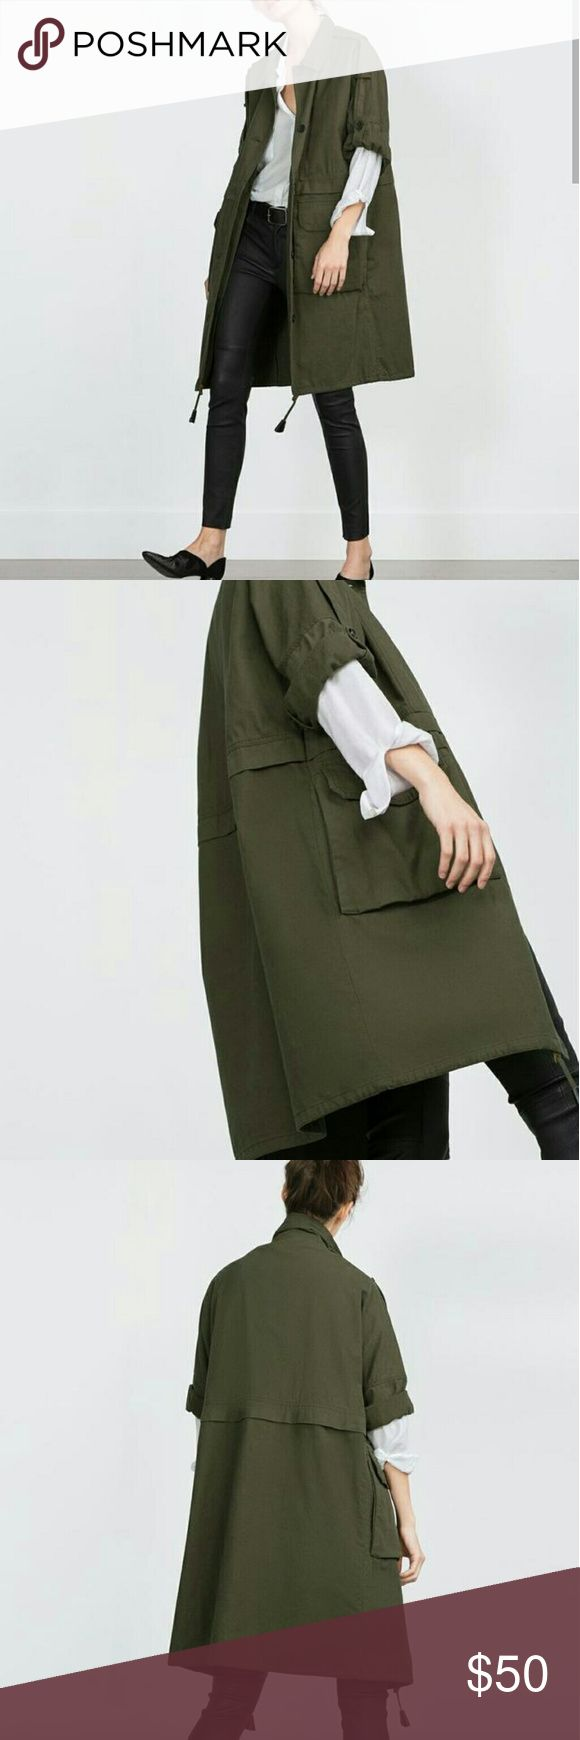 Zara Woman Khaki Parka Long Jacket Coat Embrace a longline cut with this khaki parka. The roll-up sleeves and drawstring waist add to the utilitarian chic.  Worn once. Zara Jackets & Coats